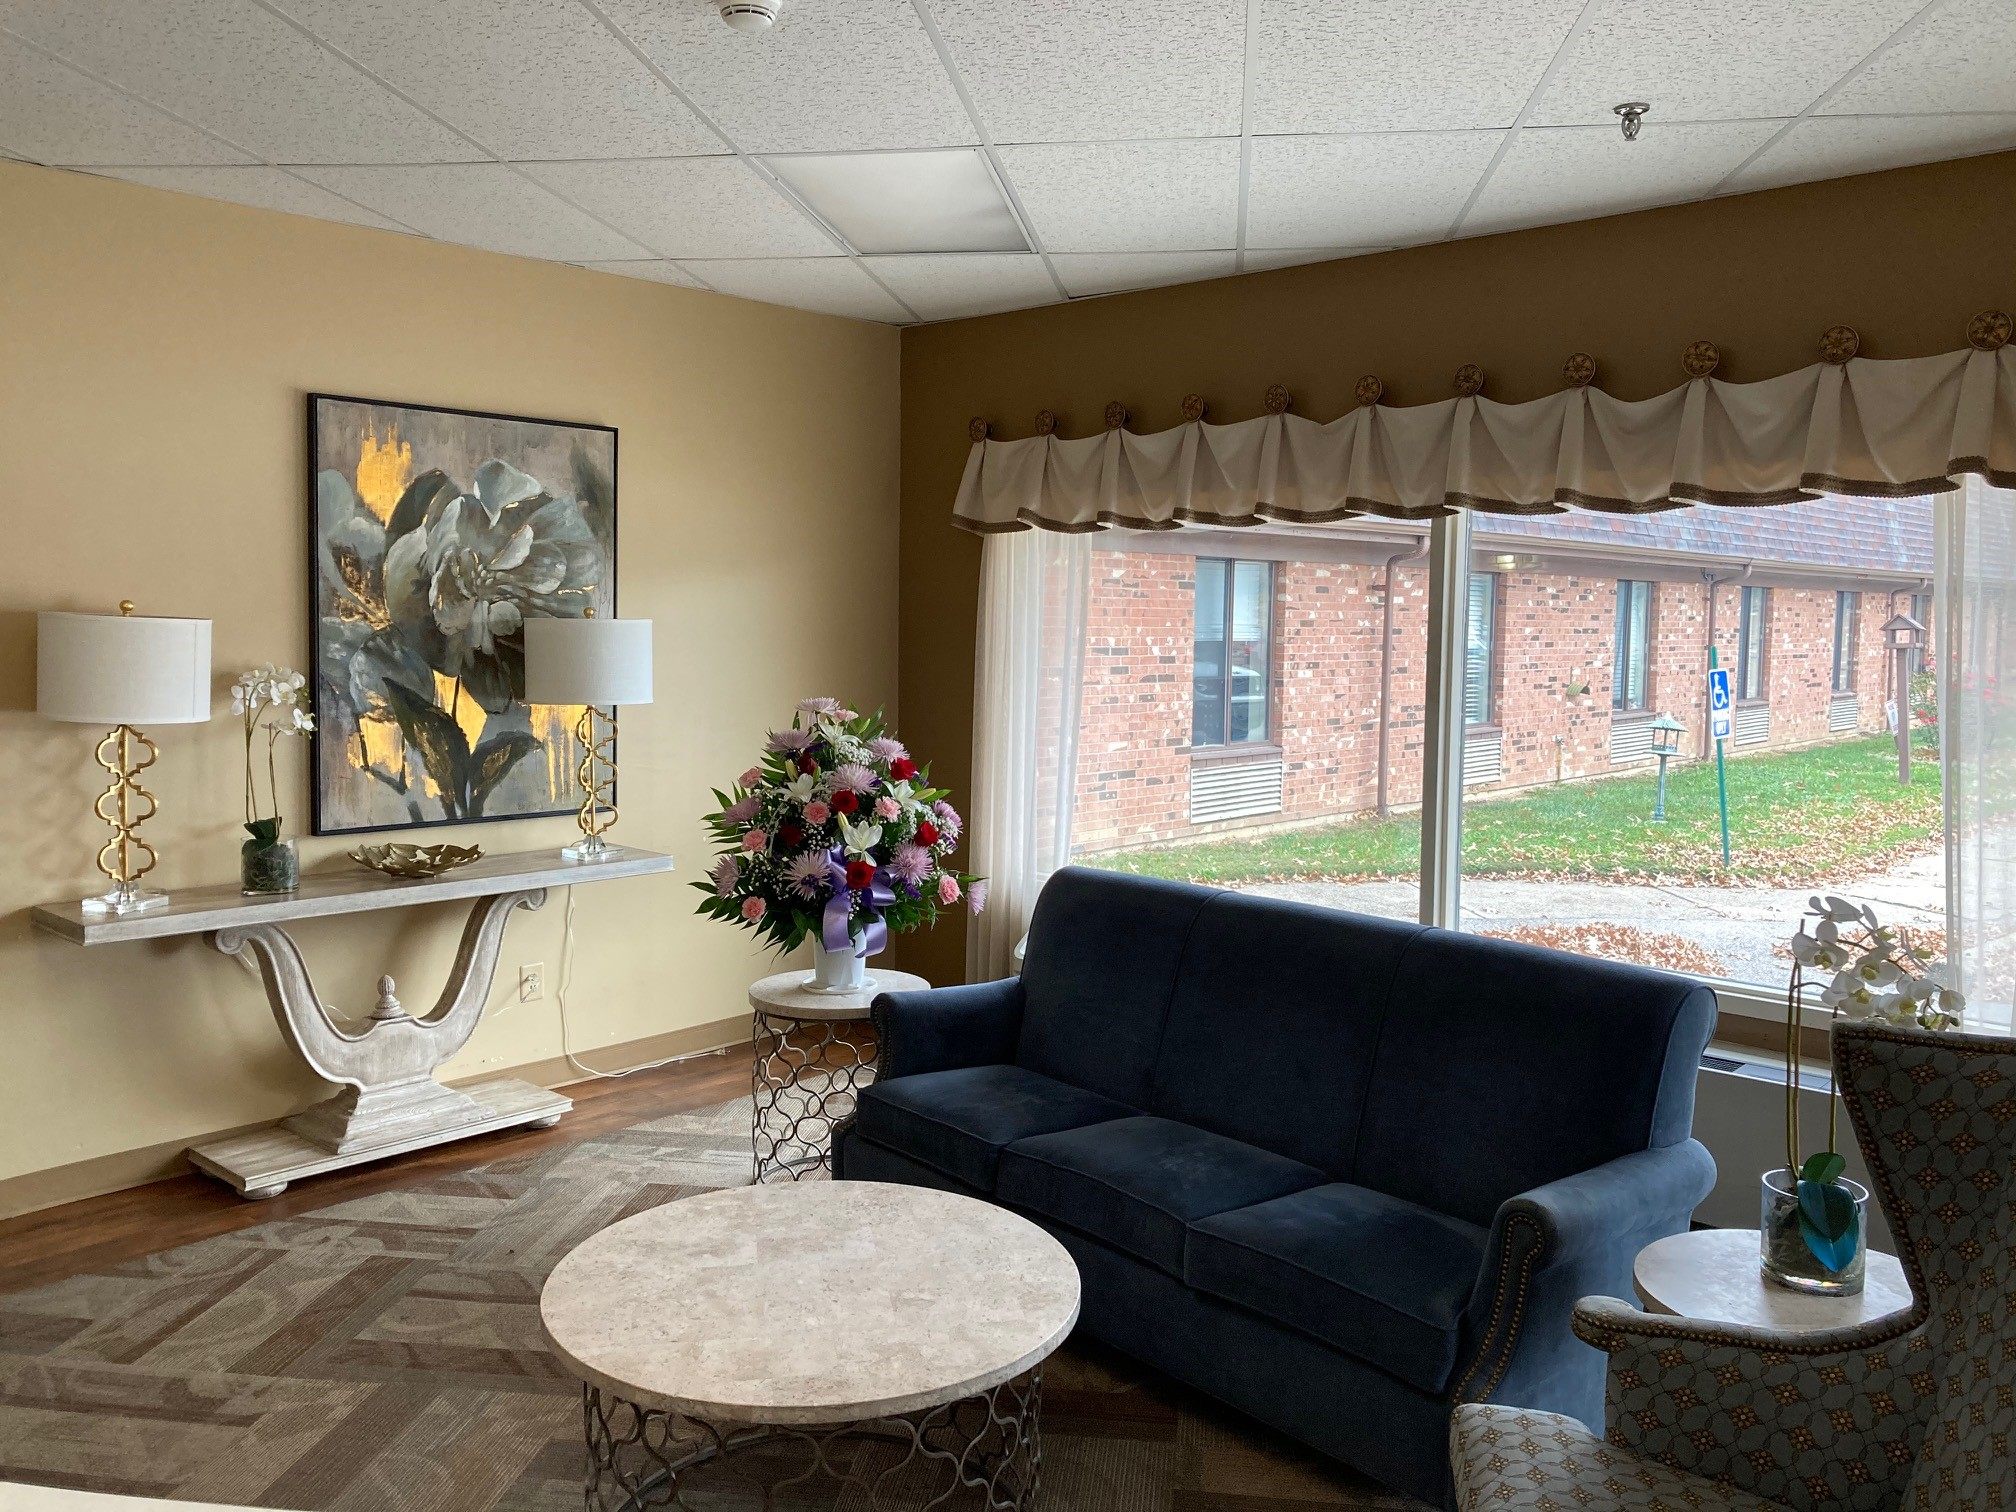 Stonerise Moundsville skilled nursing home and transitional care facility lobby